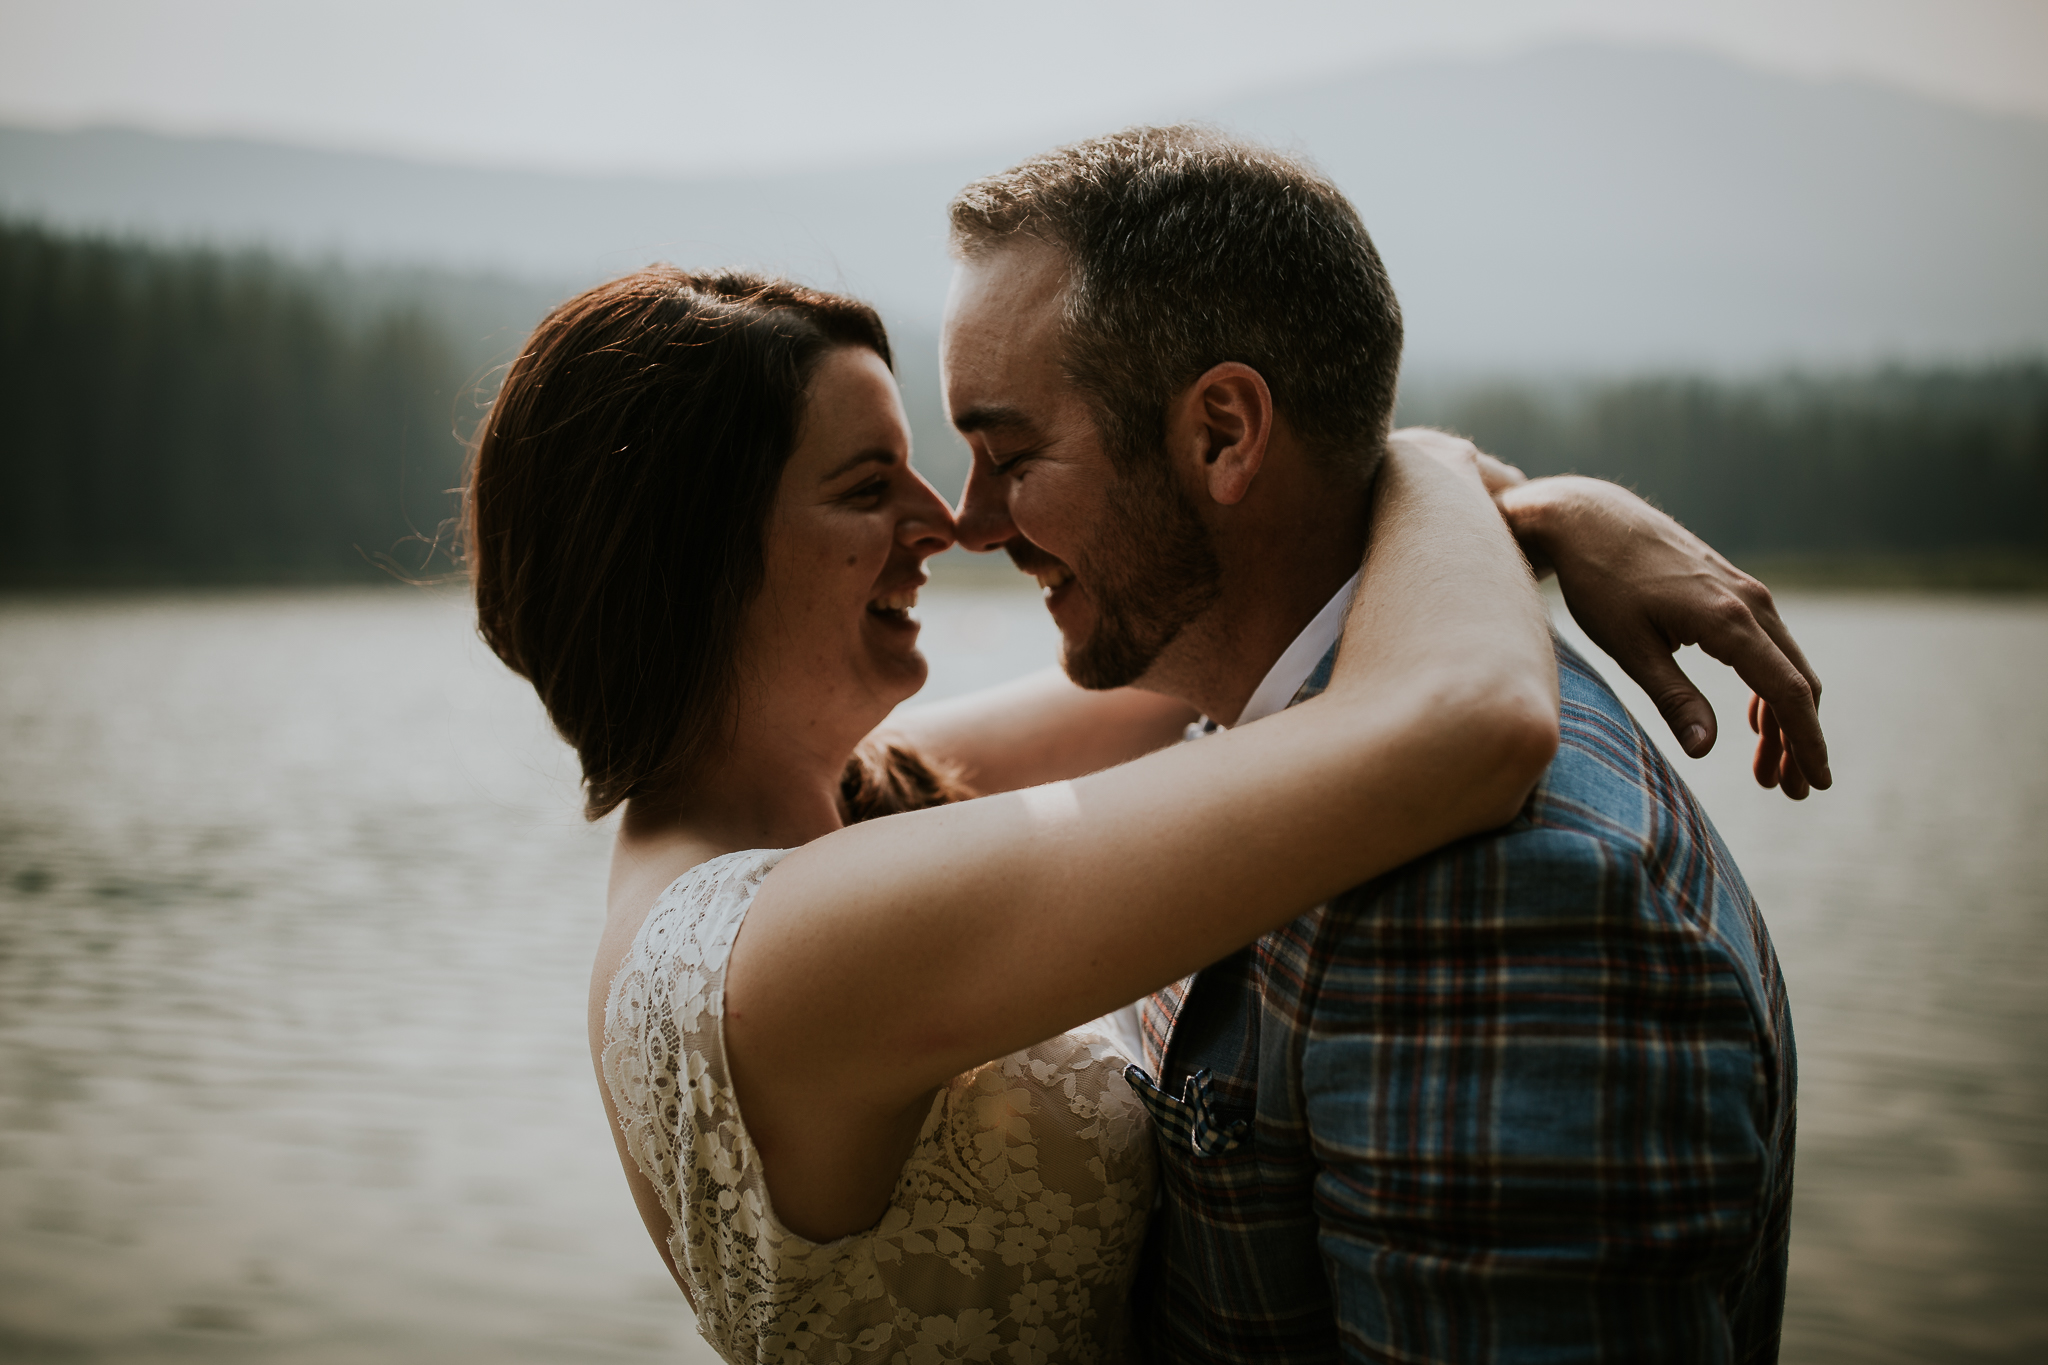 20170805-adventureelopementphotographercanada-canadaadventureelopement-adventureweddingphotographer-cedarlakewedding-goldenweddingphotographer-Rob and Dee-4381.jpg